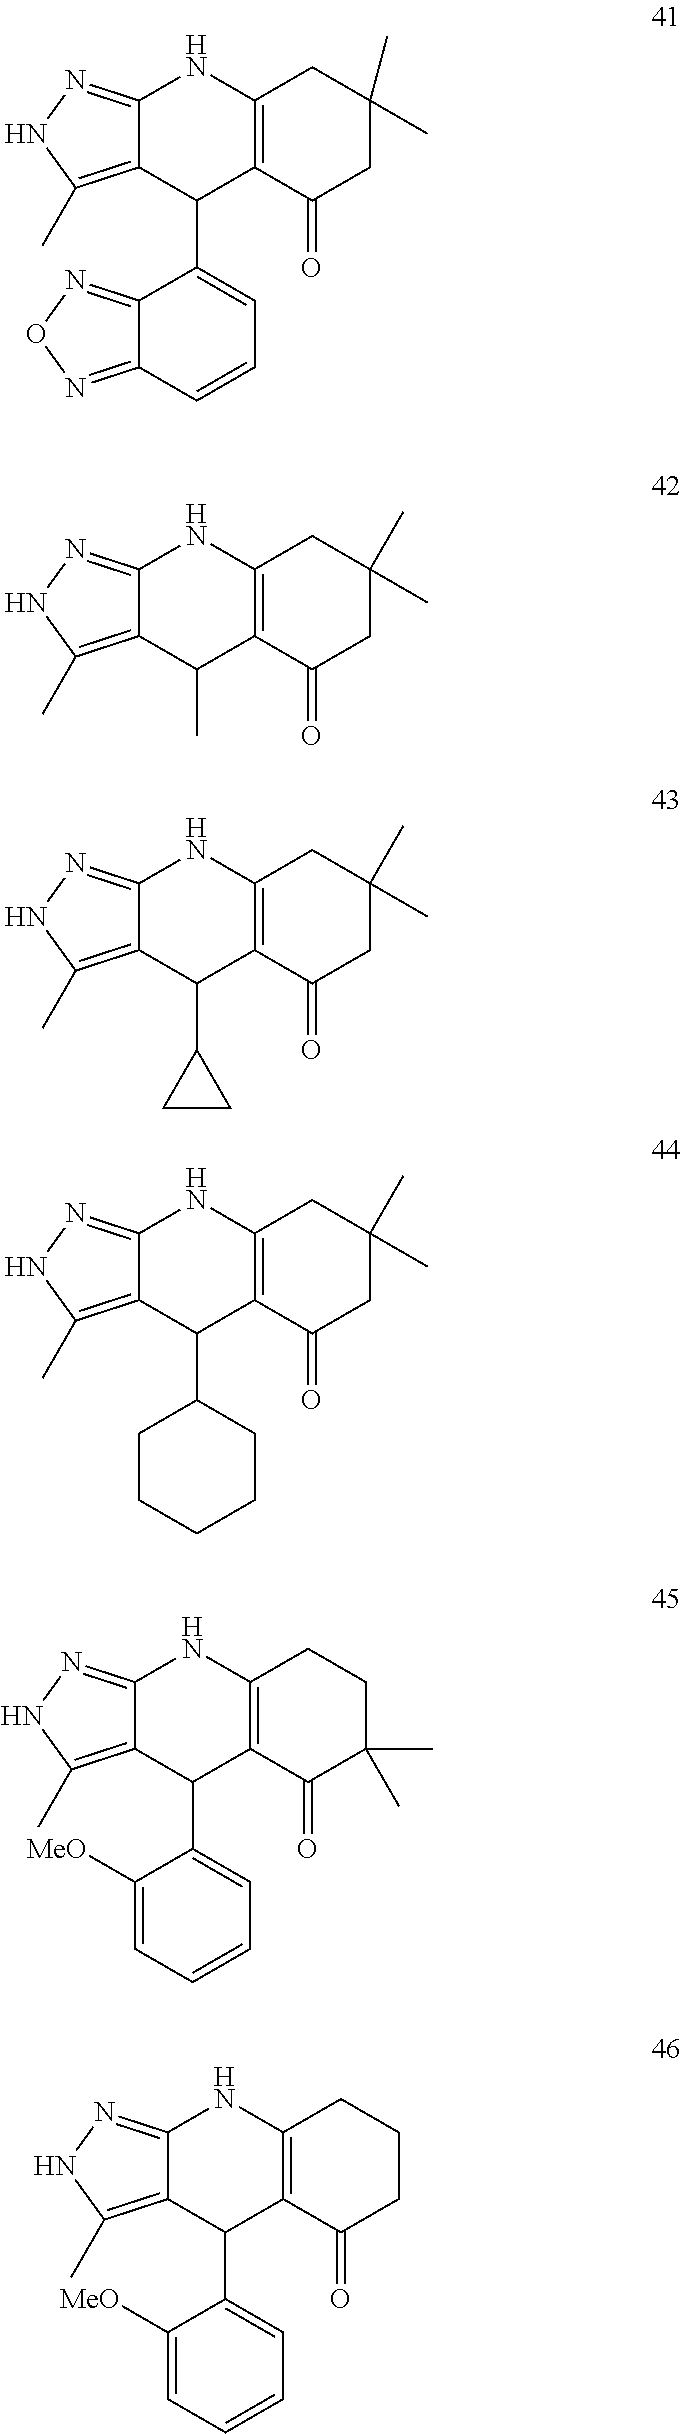 Us9096594b2 Kinase Inhibitors And Methods Of Use Thereof Google Rsk2 Switch Wiring Diagram Figure Us09096594 20150804 C00041